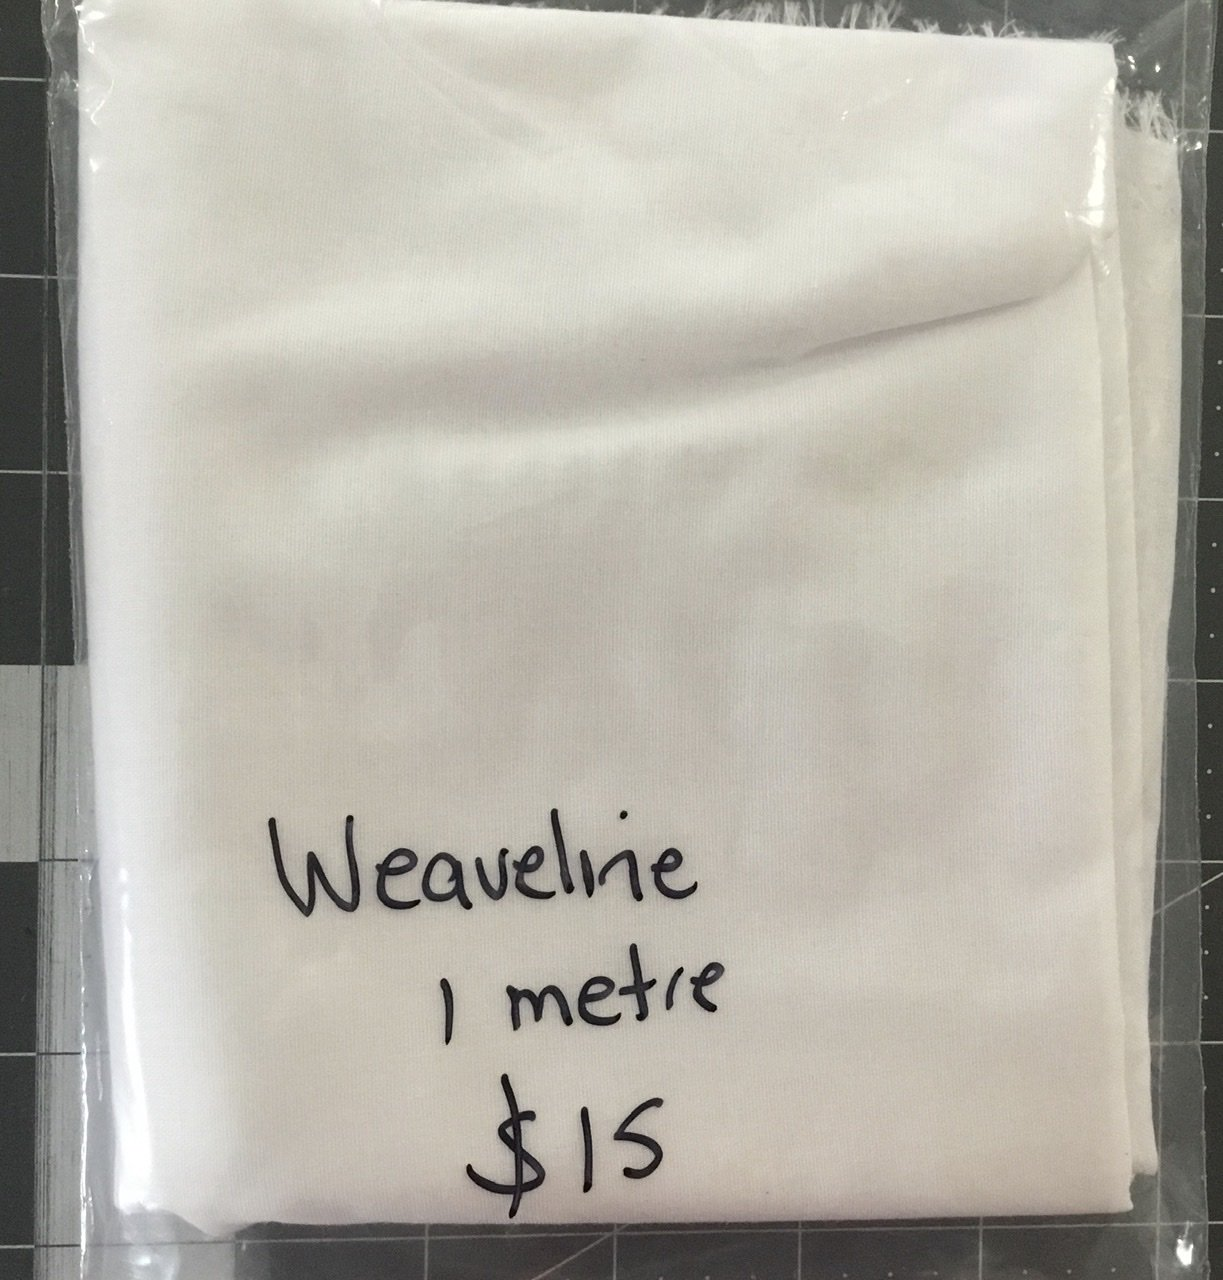 Weaveline one metre pack